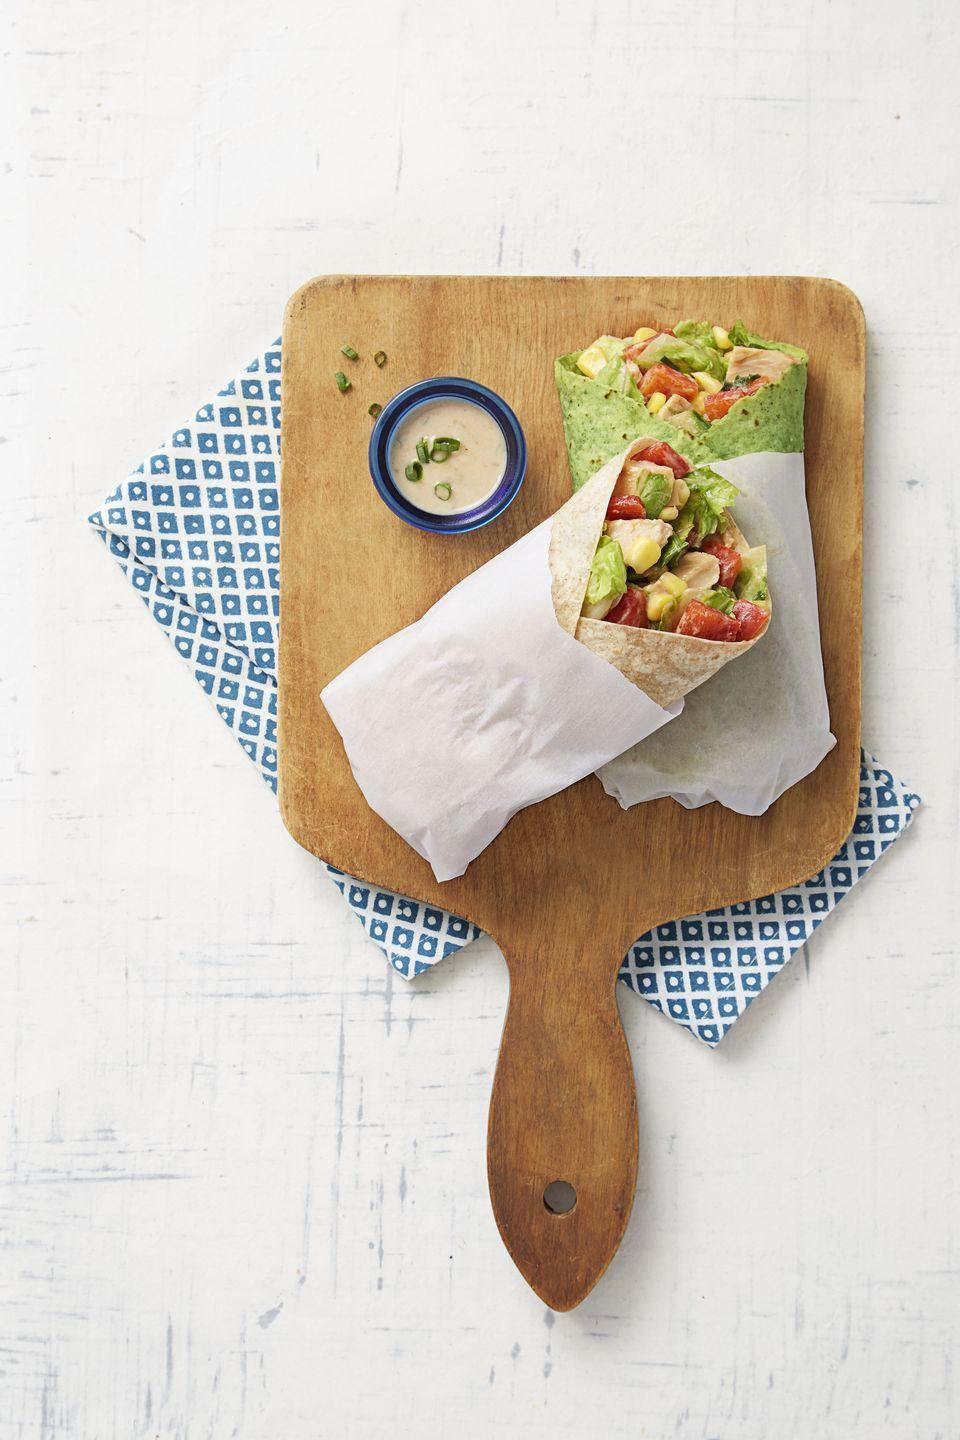 """<p>It doesn't <em>feel </em>like eating a sad salad when all the healthy fixings are tucked inside a colorful wrap.</p><p><em><a href=""""https://www.goodhousekeeping.com/food-recipes/a32409/bbq-ranch-chicken-wraps-recipe-ghk0515/"""" rel=""""nofollow noopener"""" target=""""_blank"""" data-ylk=""""slk:Get the recipe for BBQ-Ranch Chicken Wraps »"""" class=""""link rapid-noclick-resp"""">Get the recipe for BBQ-Ranch Chicken Wraps »</a></em></p>"""